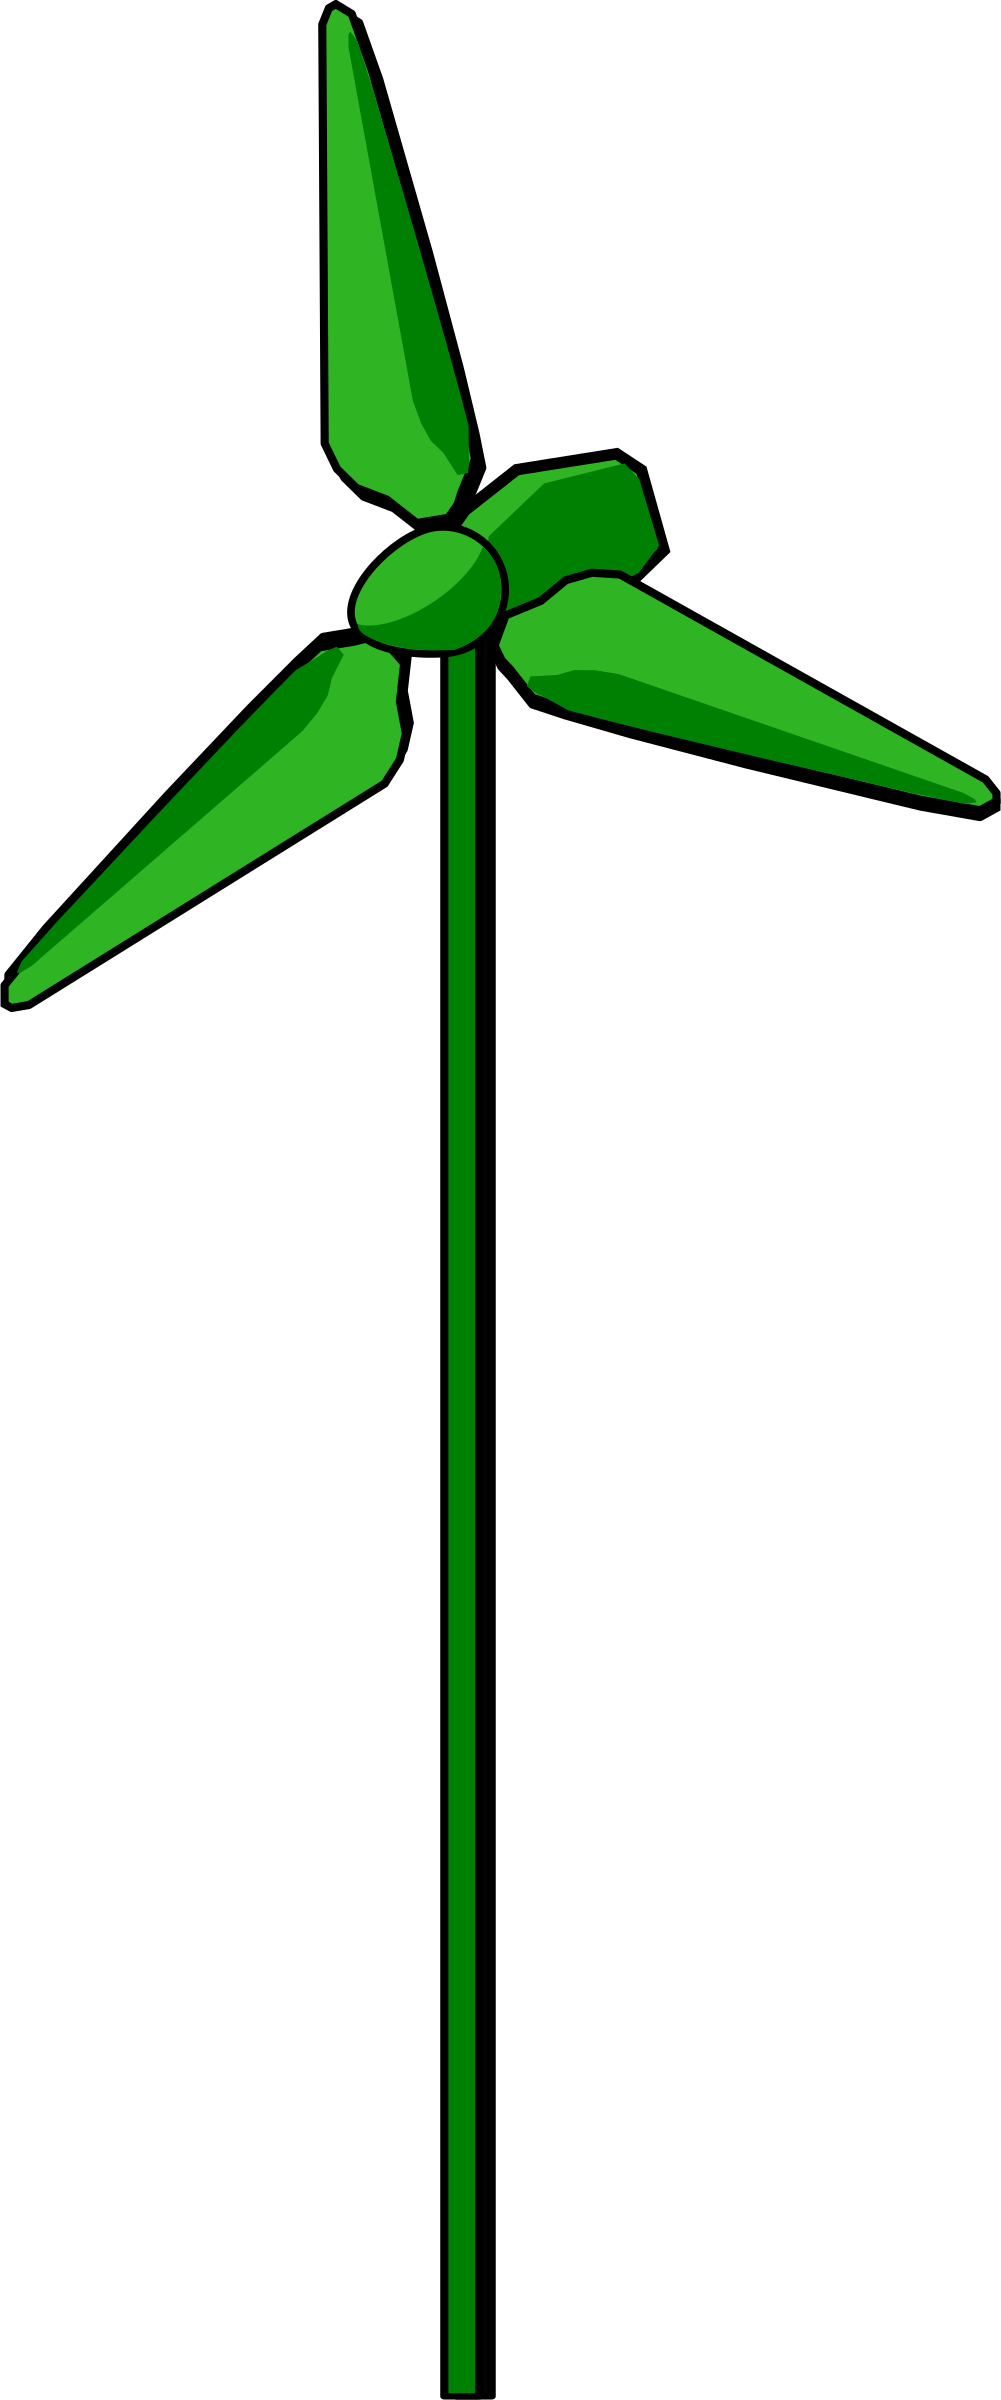 Wind Turbine Green by energie_positive